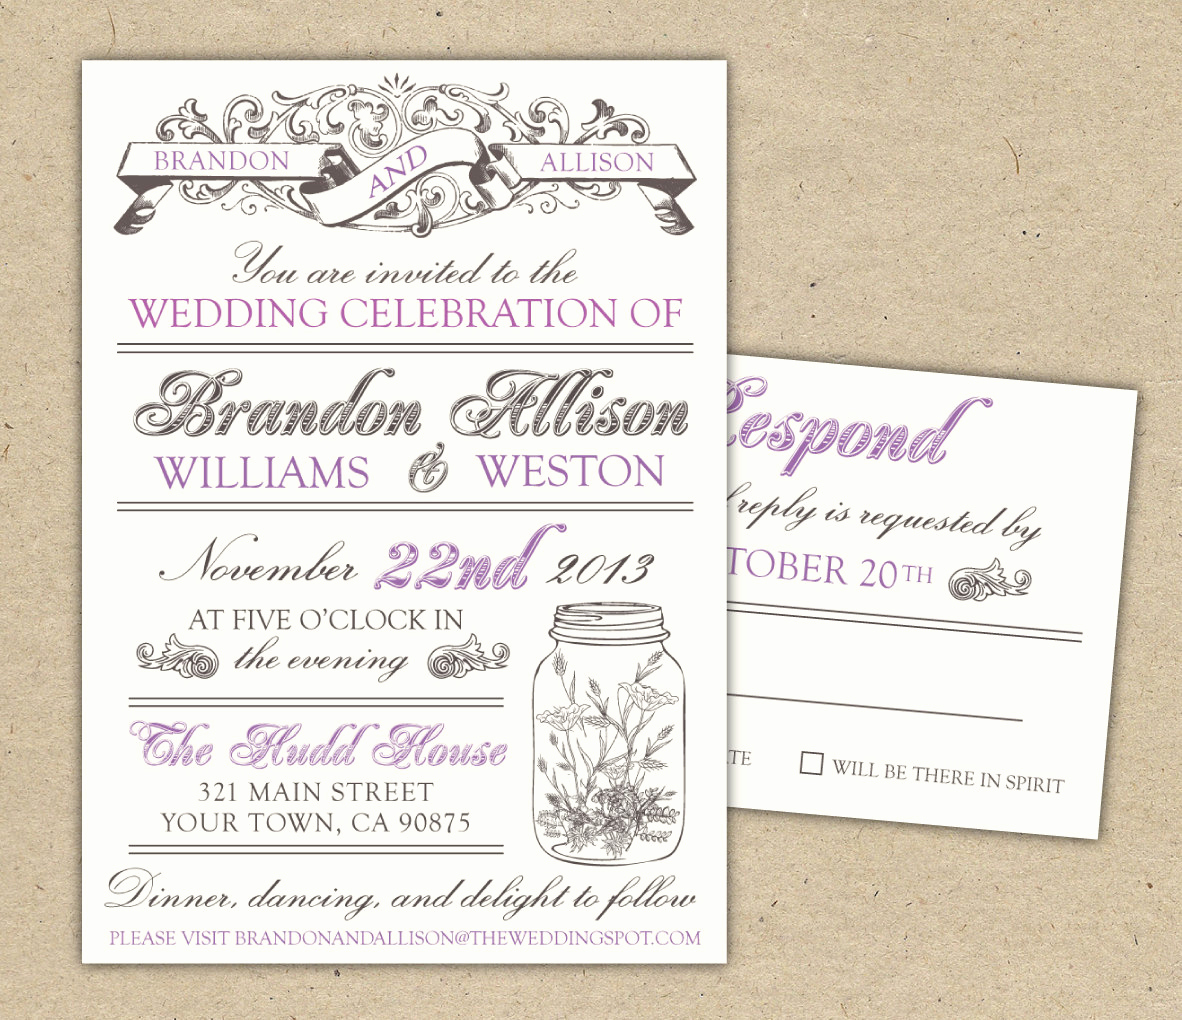 Wedding Invitation Templates Word Inspirational 30 Unique Vintage Wedding Invitations